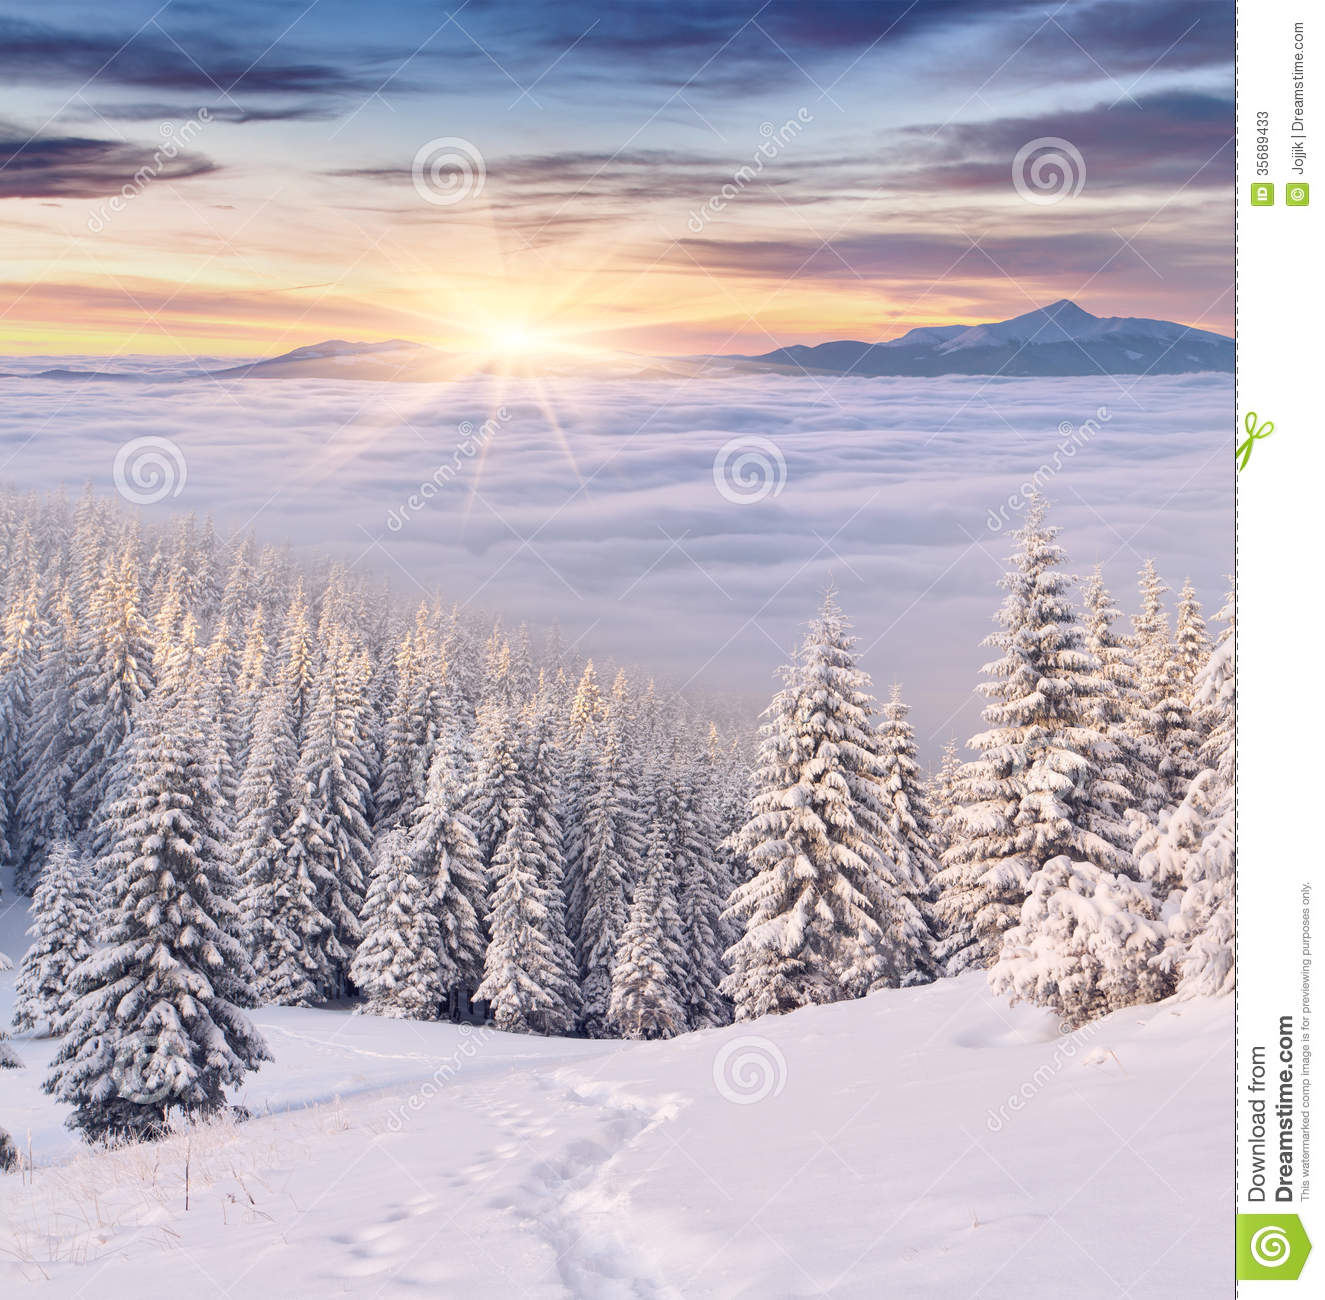 Colorful Winter Morning In Mountains Stock Photos